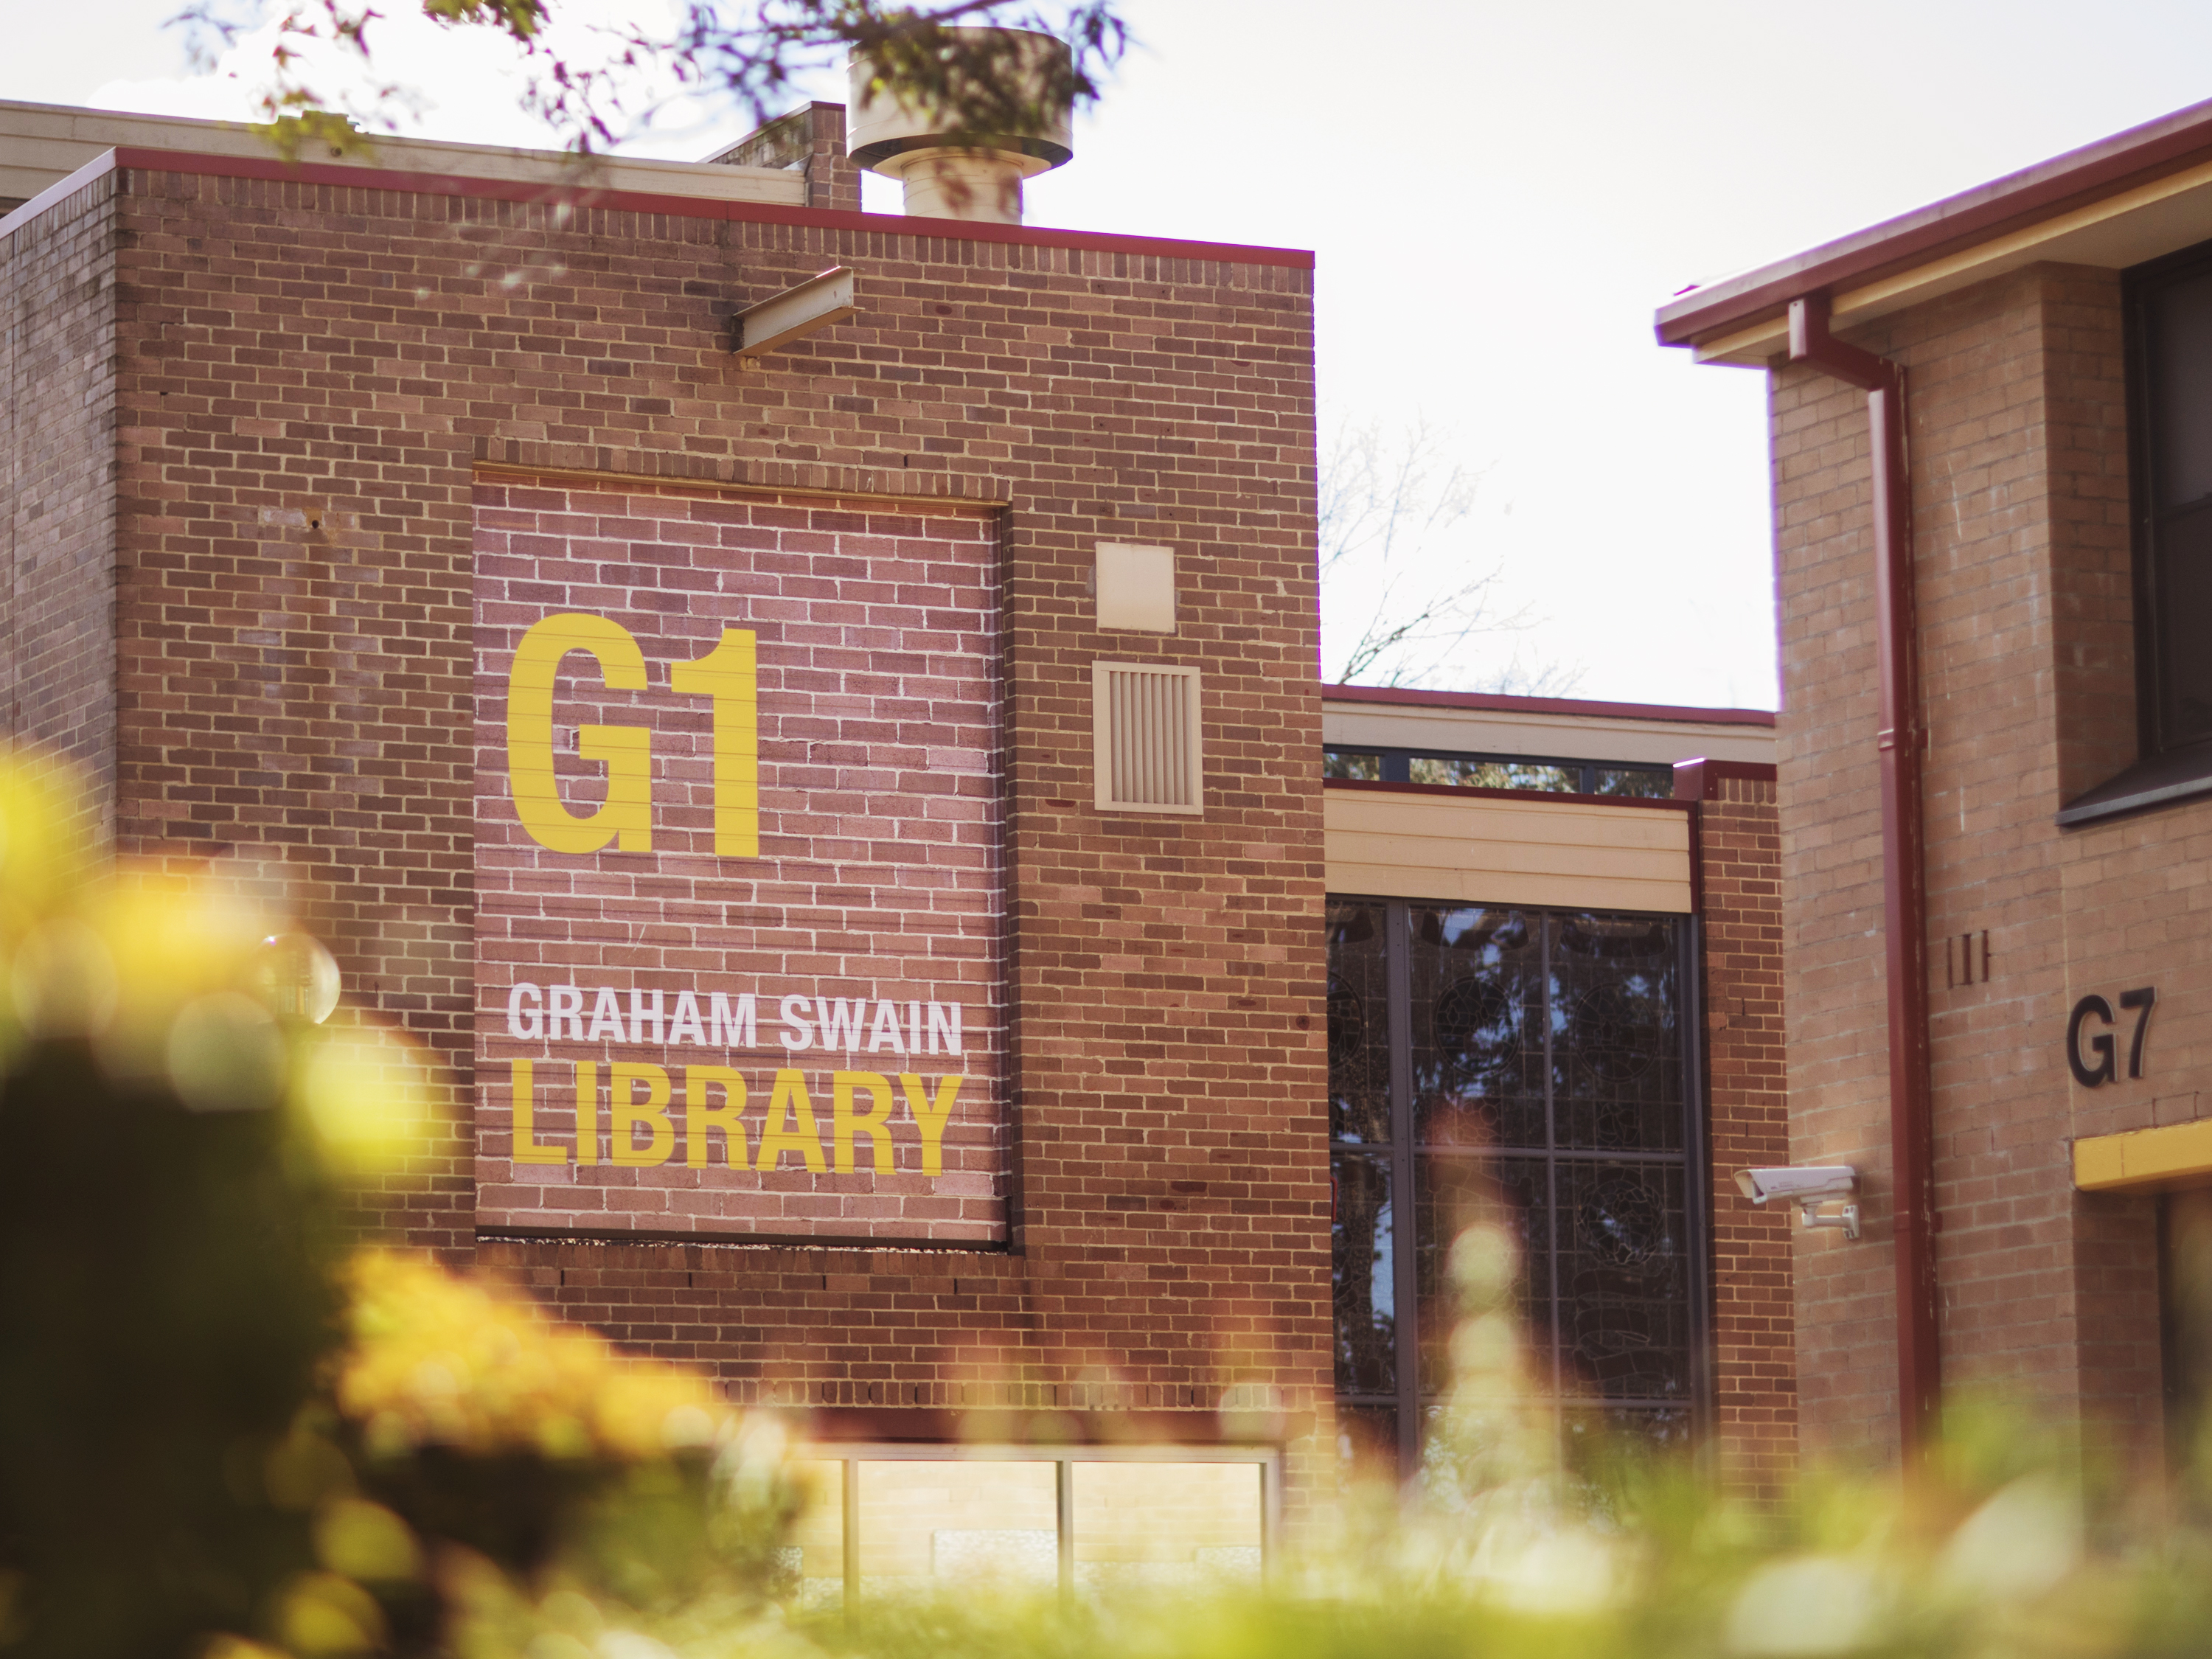 Located on our historic Hawkesbury Campus, our library offers collaborative and quiet study areas along with educated staff to provide students with a motivating learning environment.